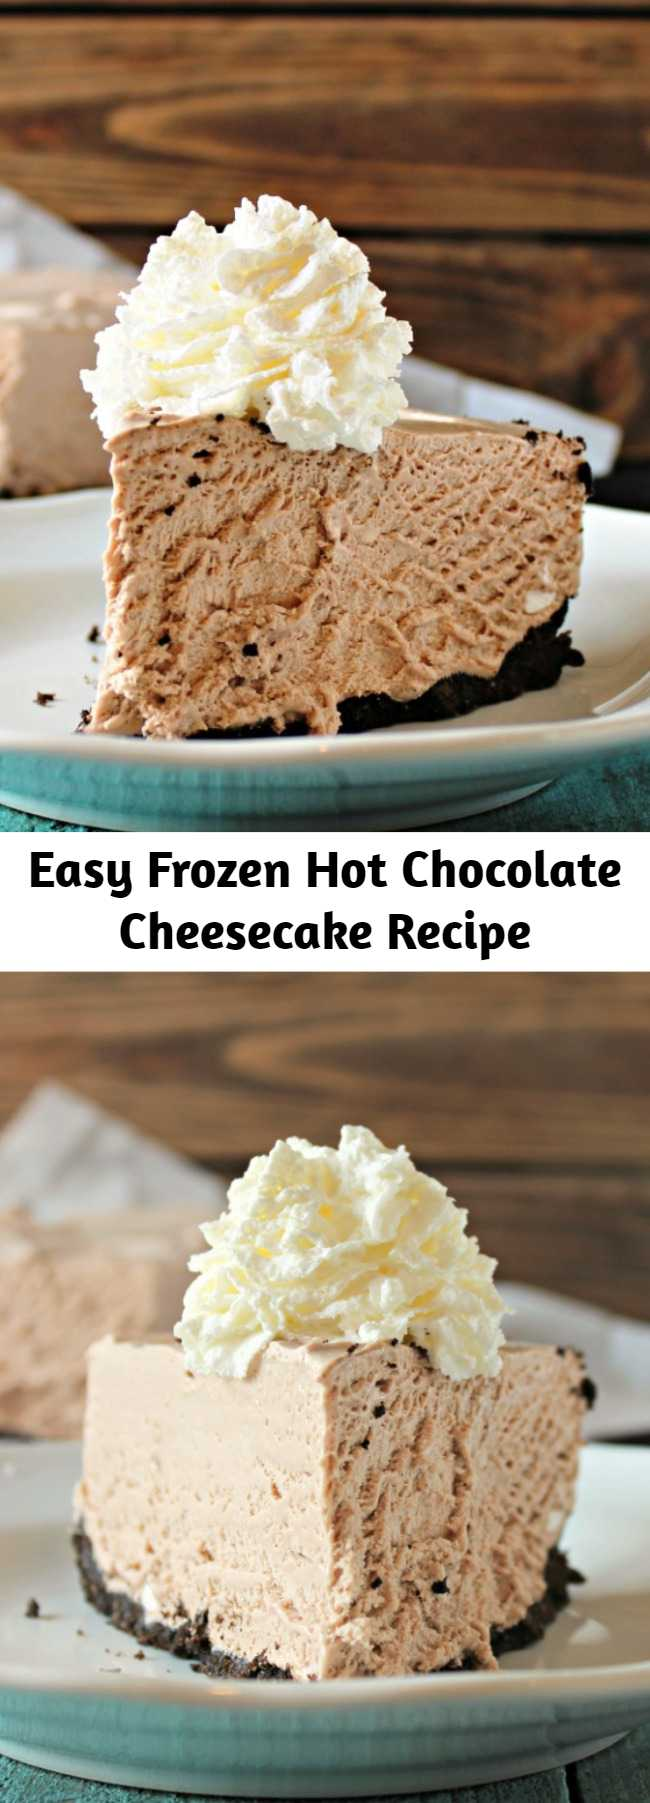 Easy Frozen Hot Chocolate Cheesecake Recipe - A frozen hot chocolate cheesecake (ice cream, chesesecake-flavored pie) with an oreo crust, mini marshmallows, and swirls of marshmallows mixed throughout.